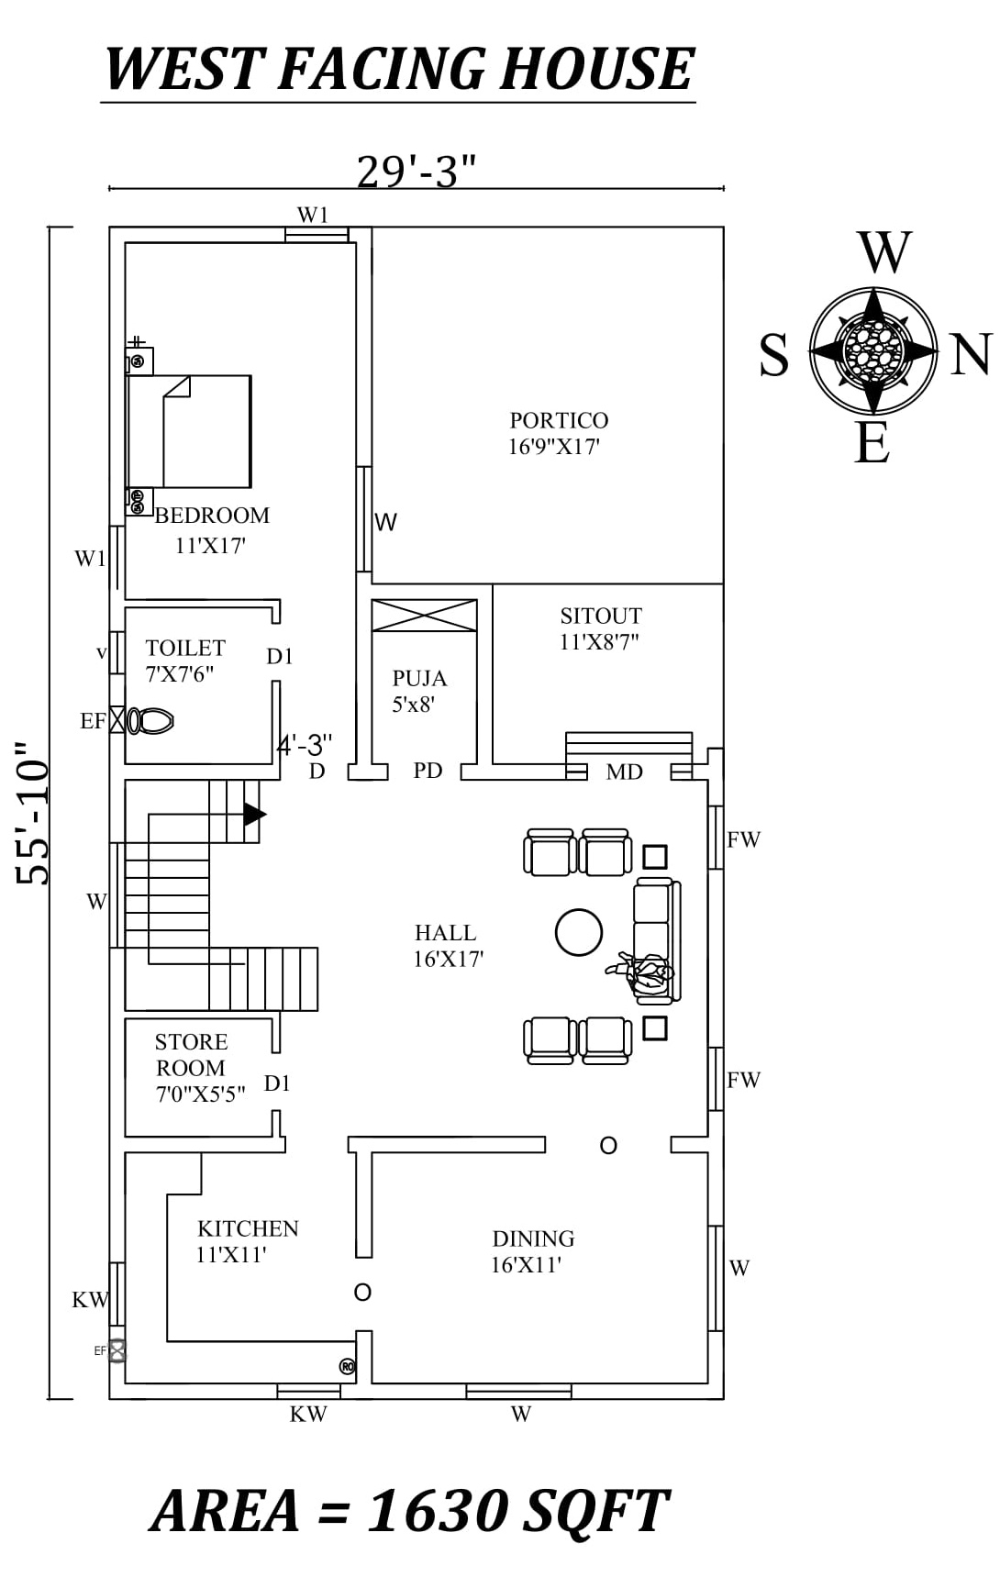 29 X55 Single Bhk West Facing House Plan Layout As Per Vastu Shastra Autocad Dwg And Pdf File West Facing House Single Floor House Design House Plans